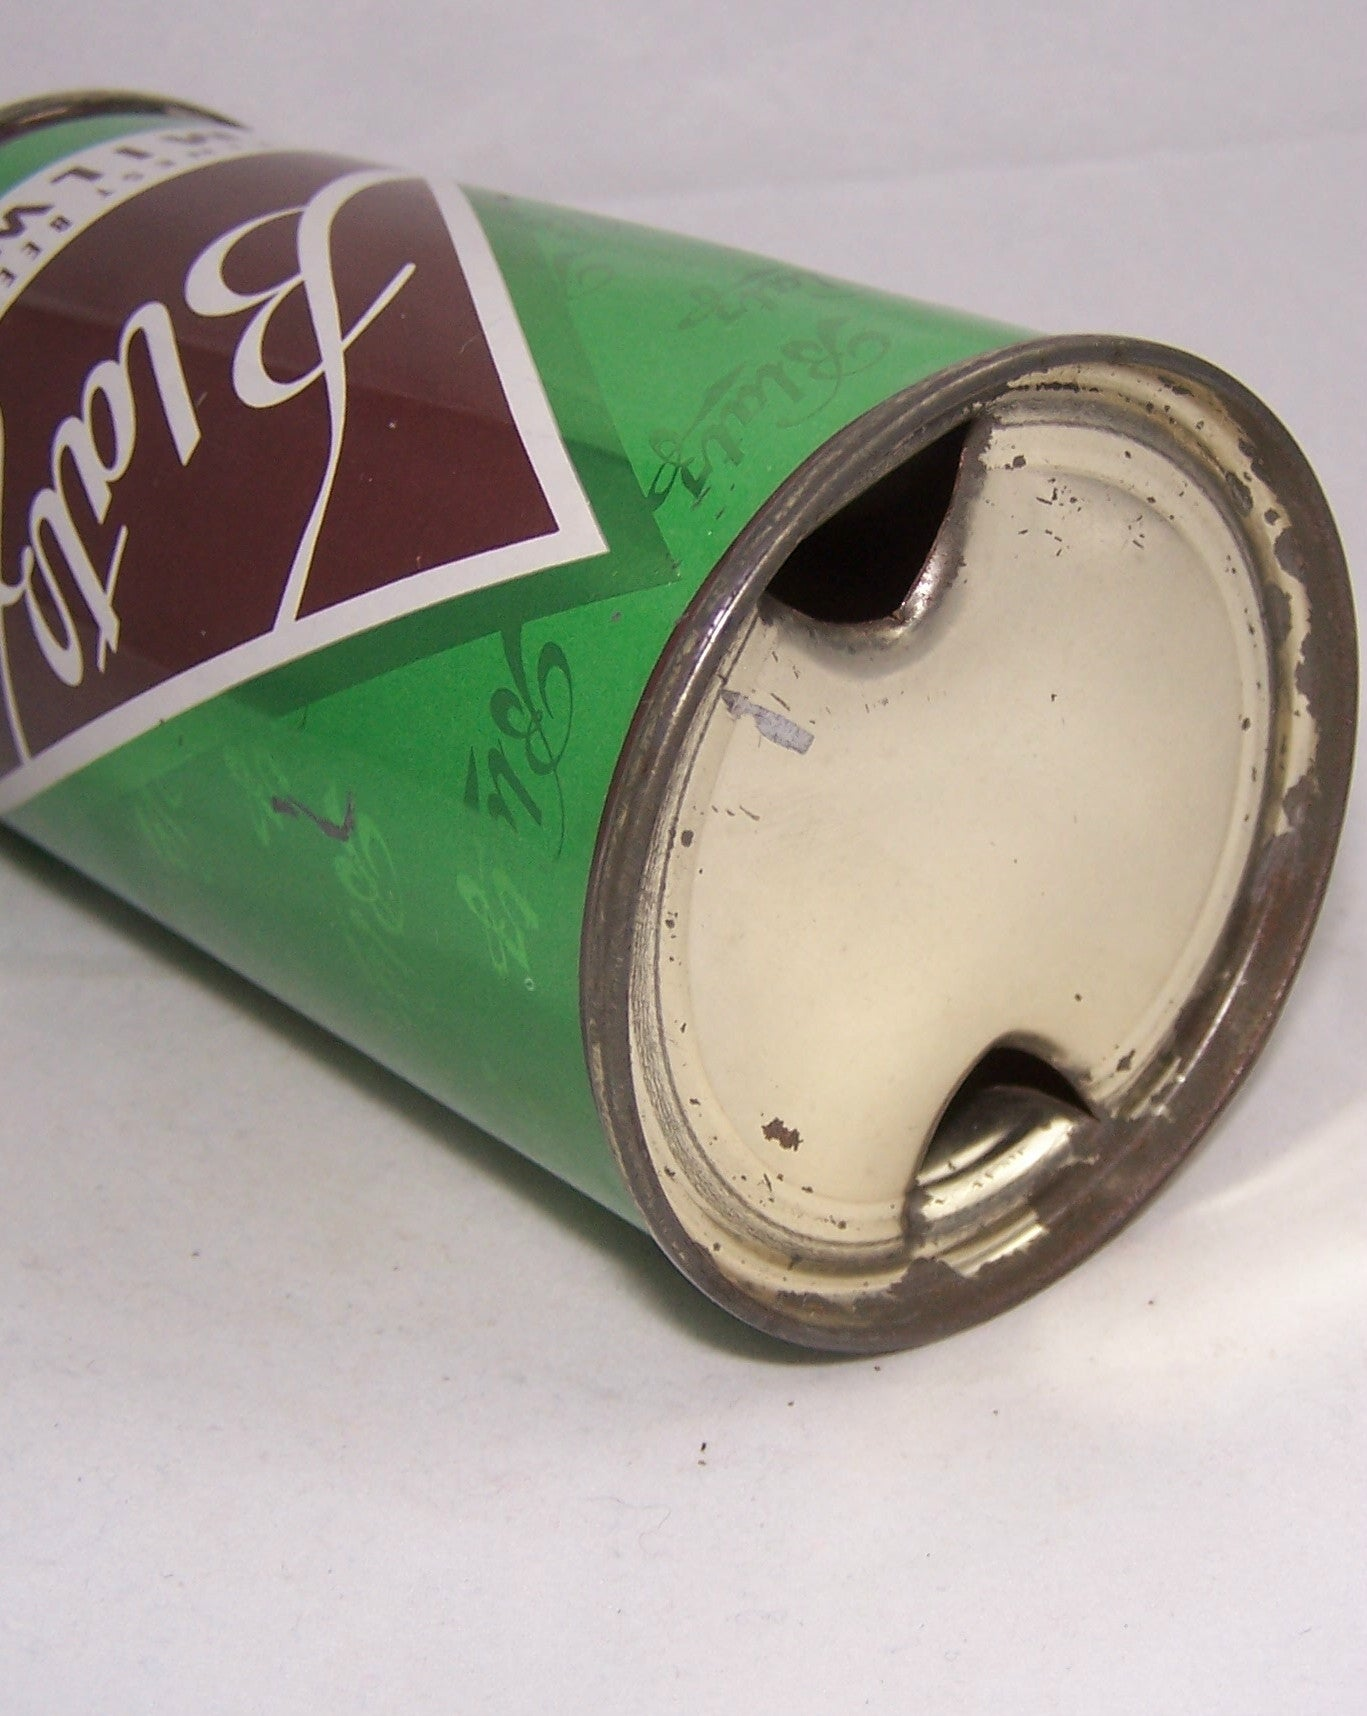 Blatz Beer (Green) USBC 39-13, Grade 1 to 1/1+ Sold on 11/26/16